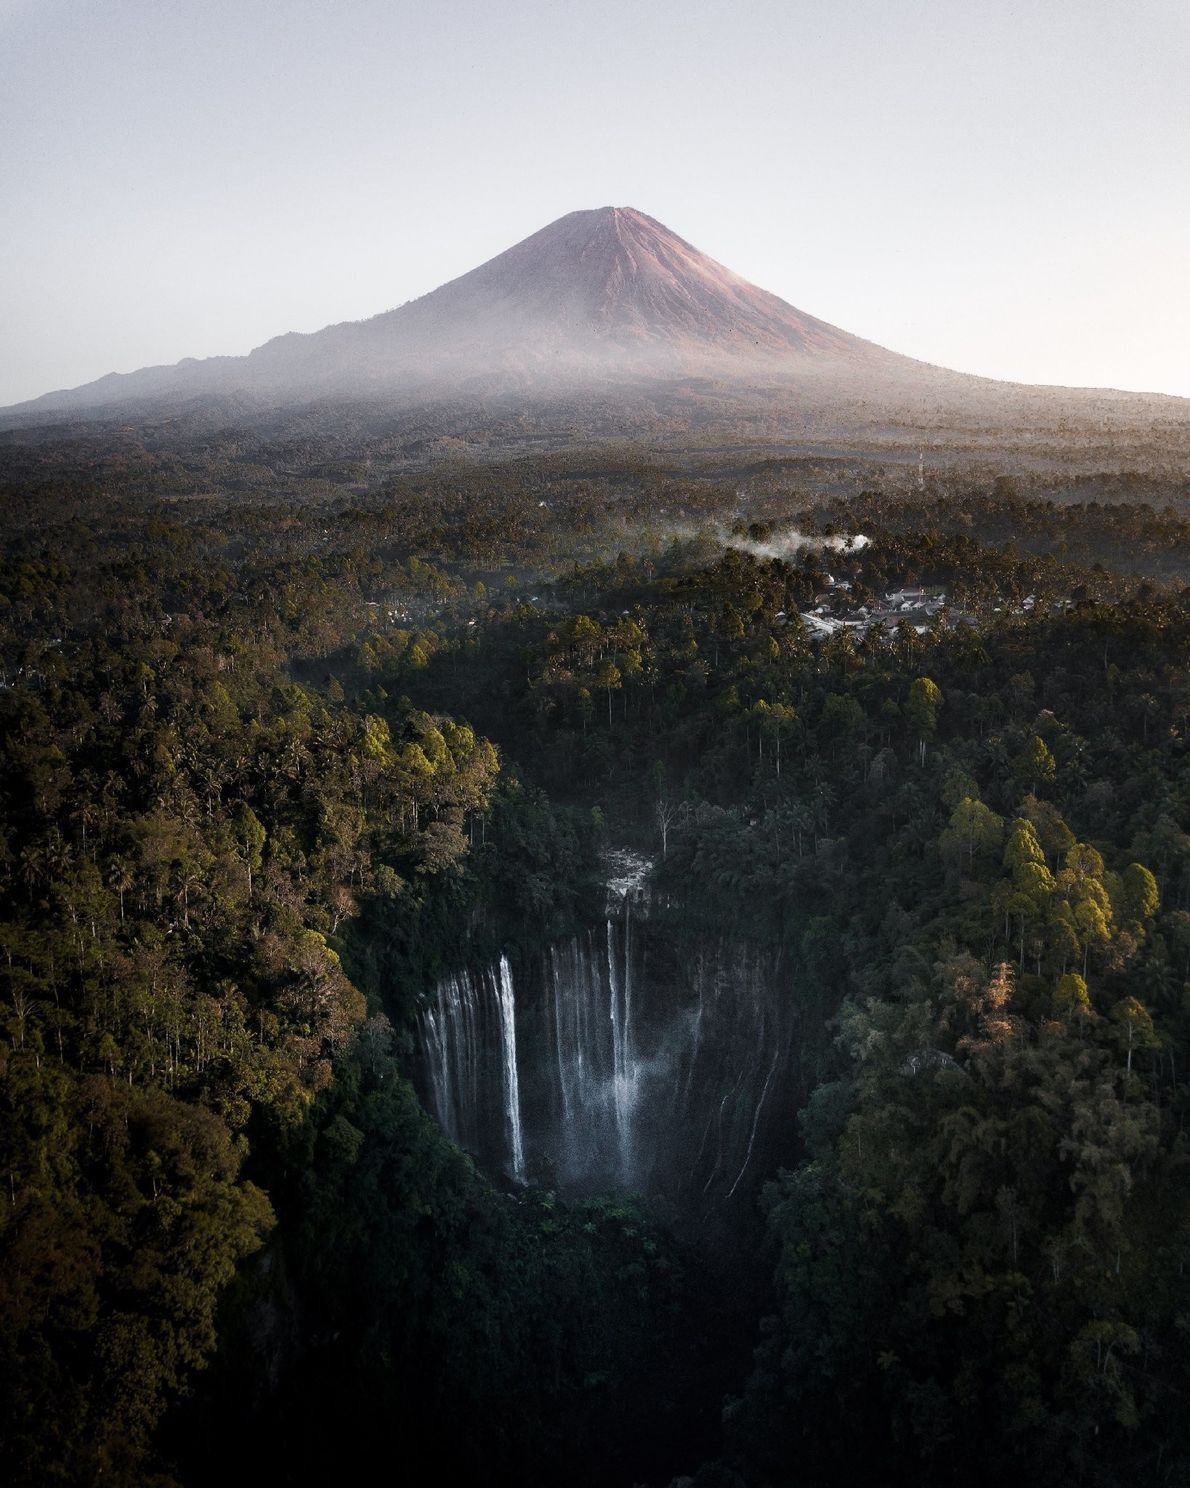 """""""Waterfalls, the deep jungle and a massive volcano! East Java literally has it all,"""" writes Your ..."""